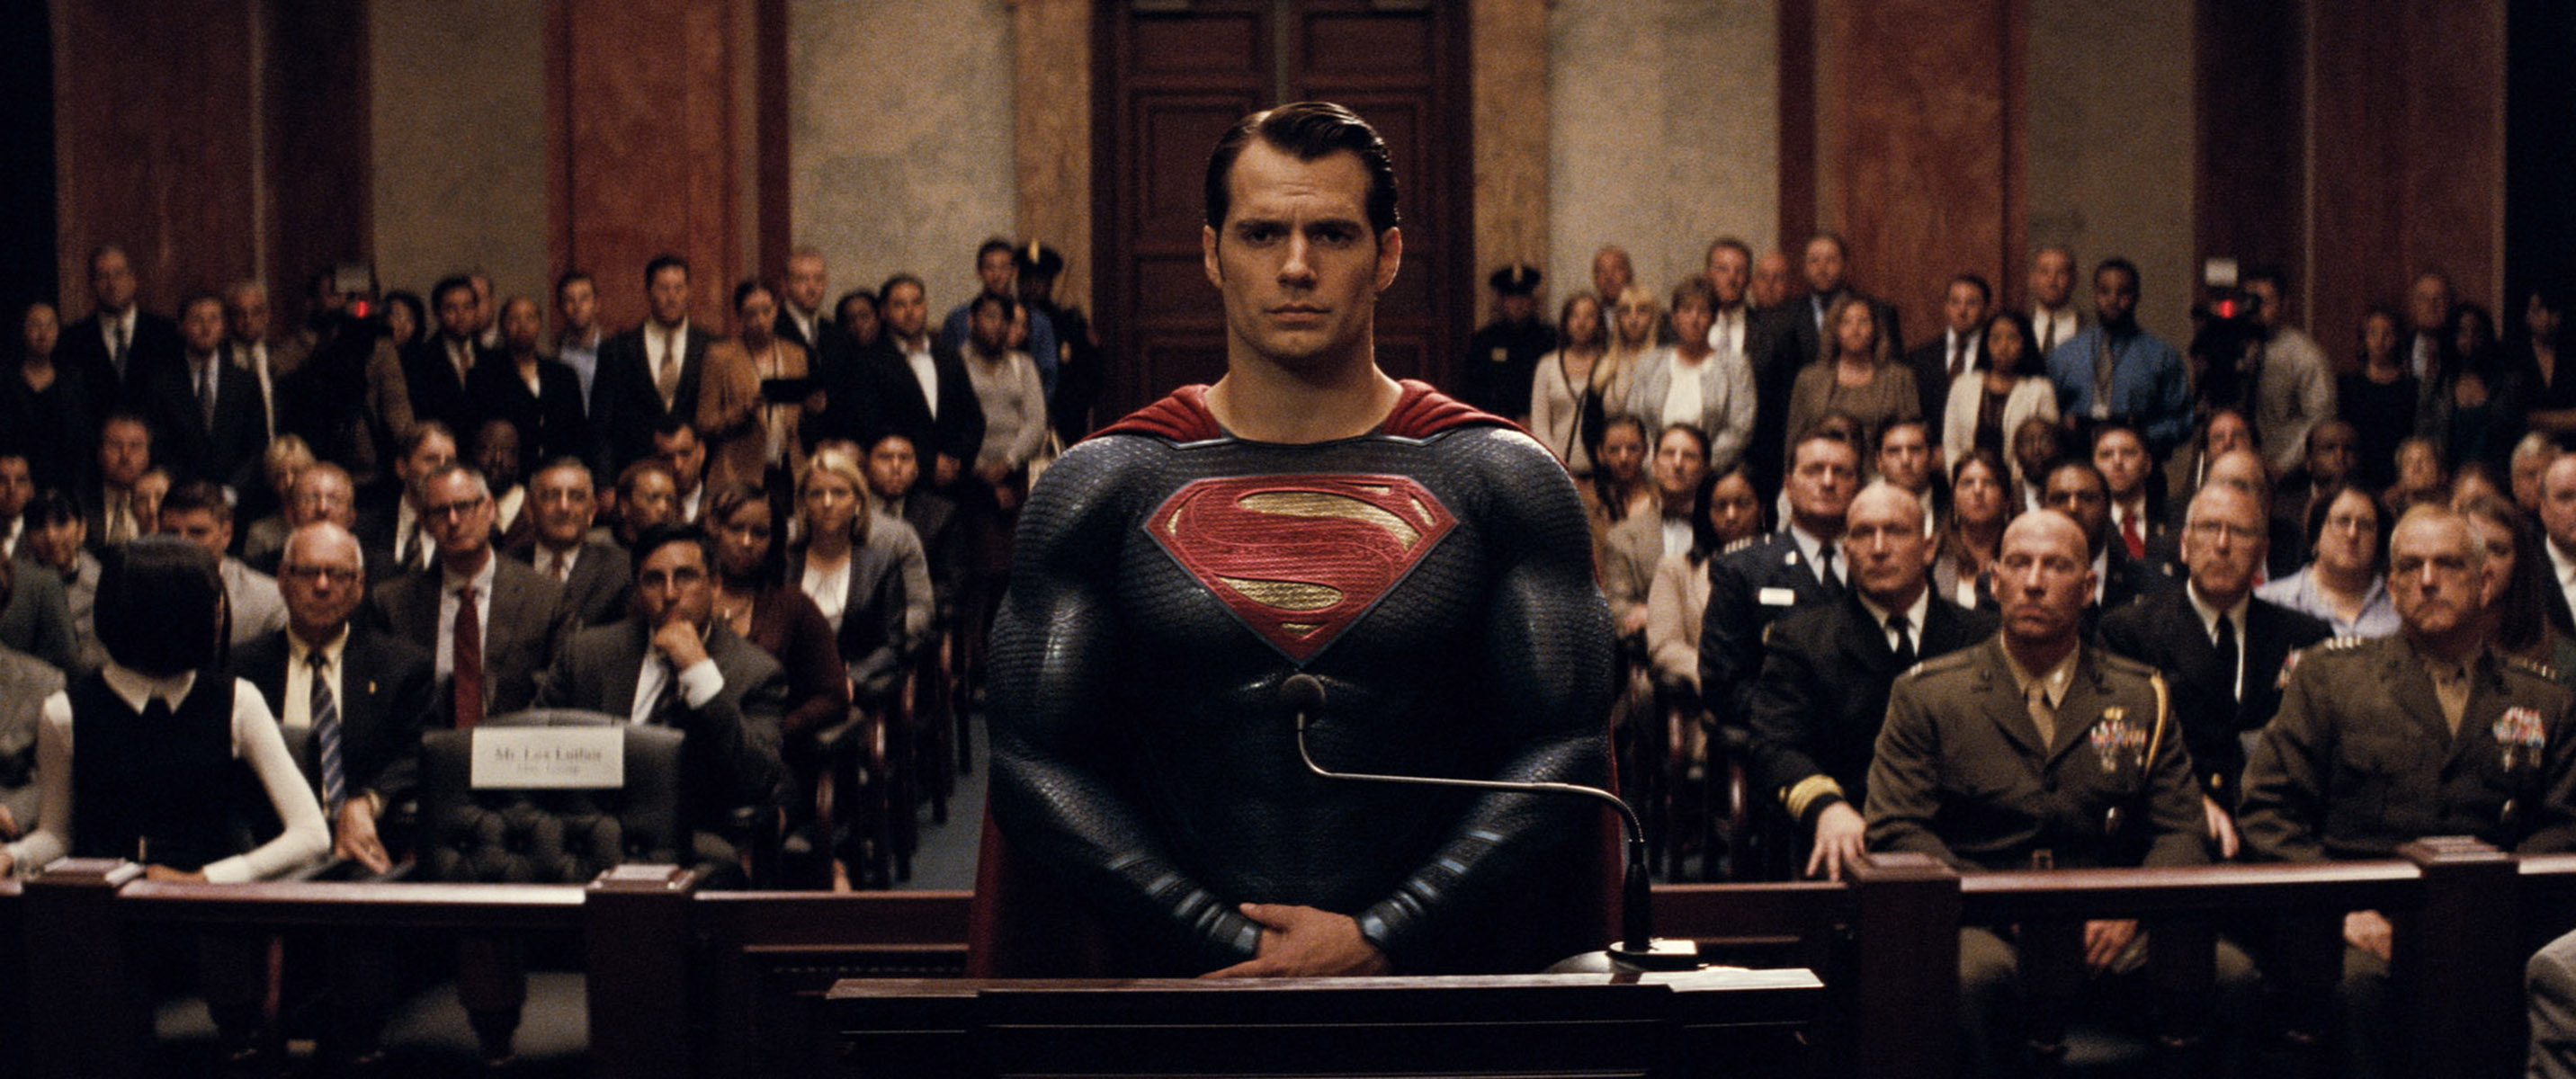 "HENRY CAVILL as Superman in Warner Bros. Pictures' action adventure ""BATMAN v SUPERMAN: DAWN OF JUSTICE,"" a Warner Bros. Pictures release."